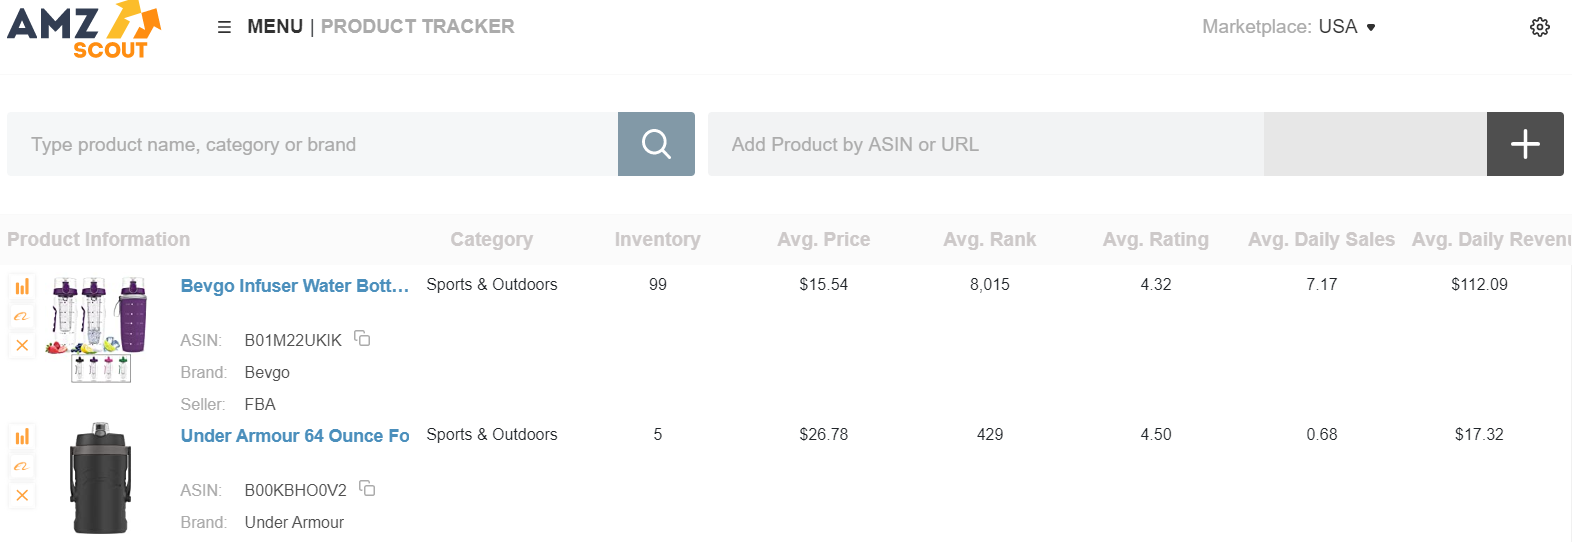 AMZscout Product Tracker